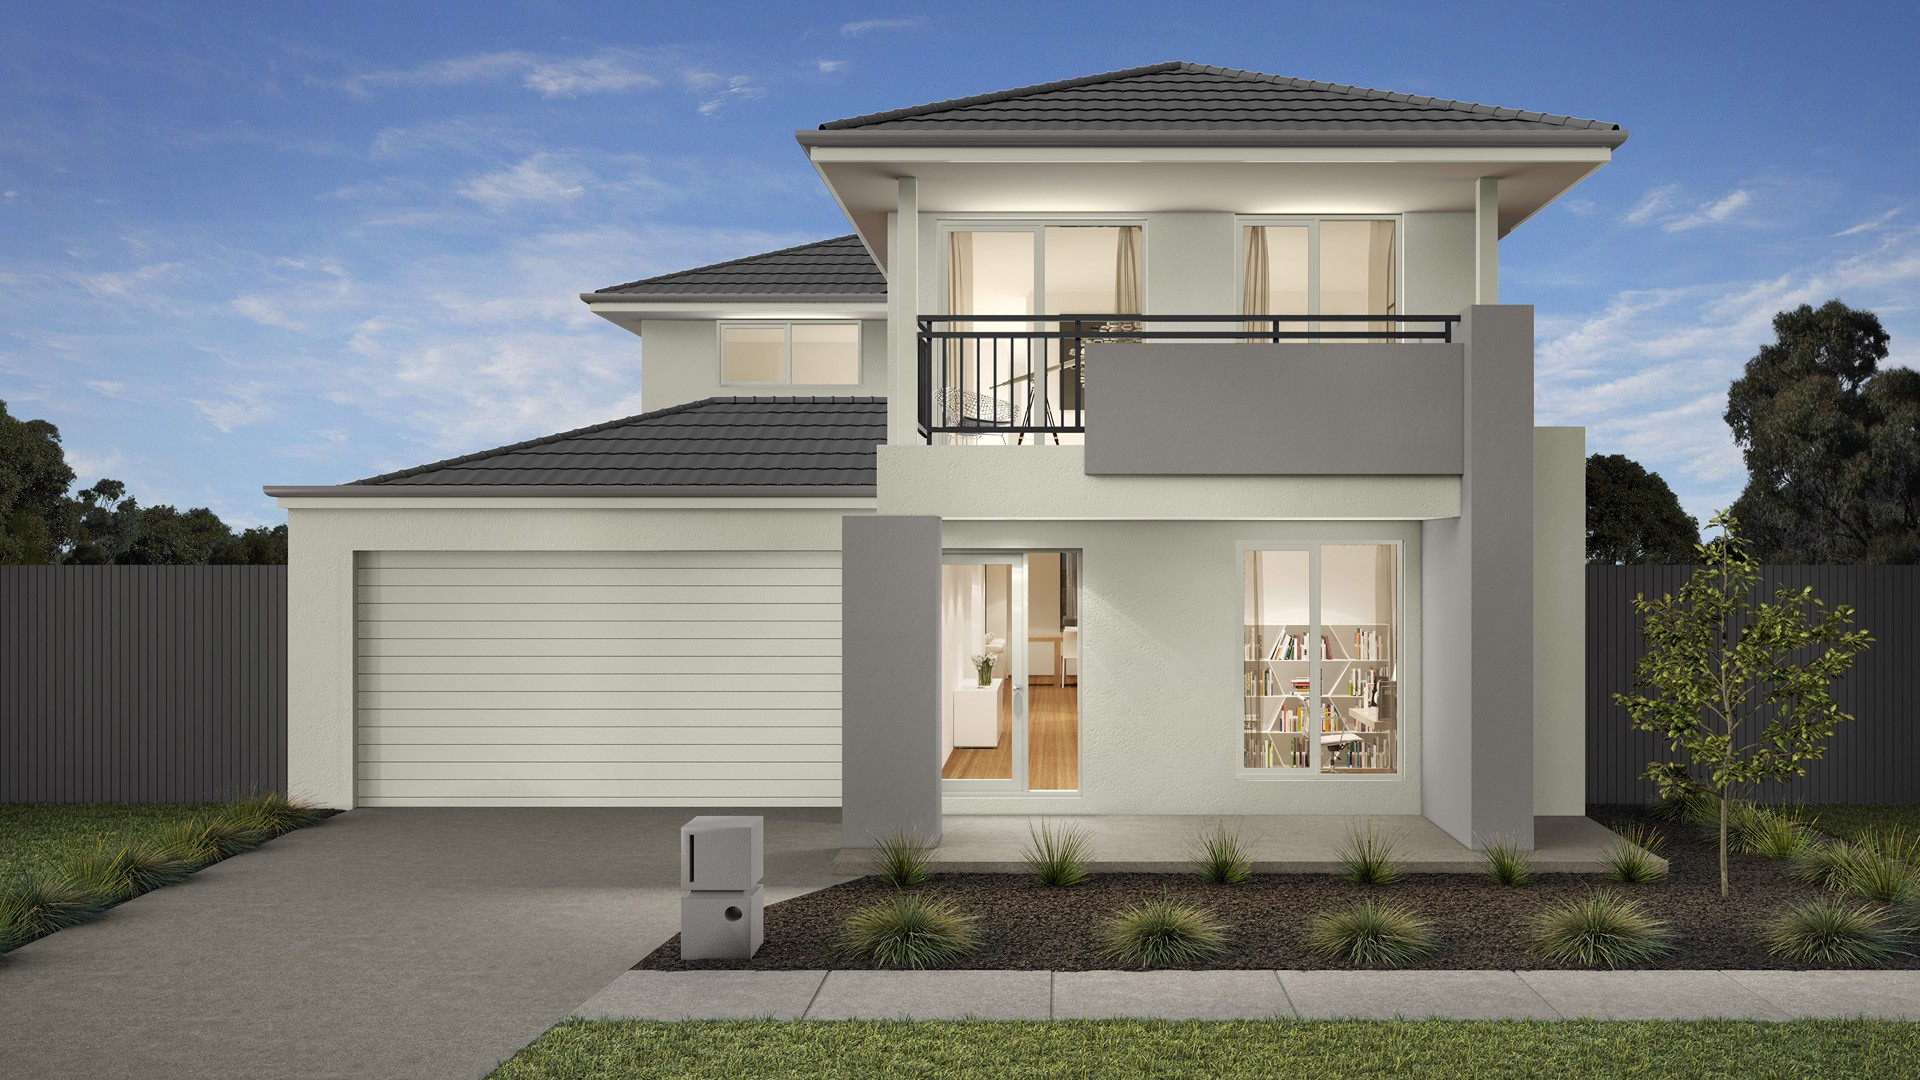 EASYLIVING JAMISON HEBEL MANCHESTER 12.5 Exterior Image 2